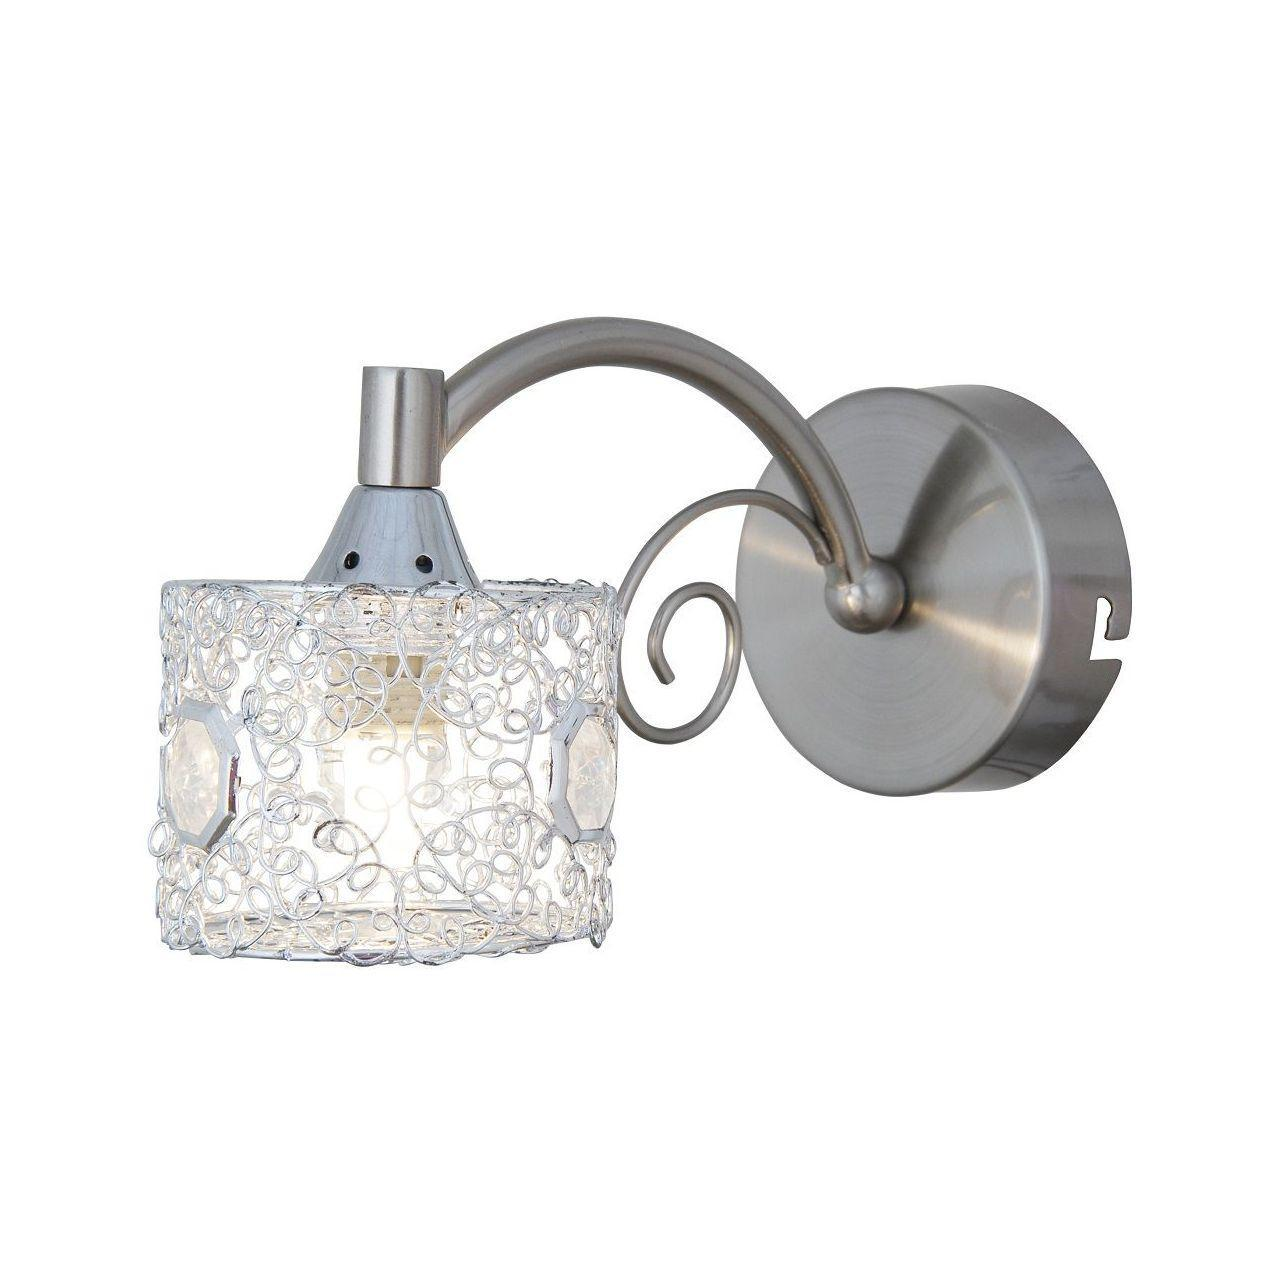 Бра Silver Light Lille 123.44.1 бра silverlight lille 123 44 1